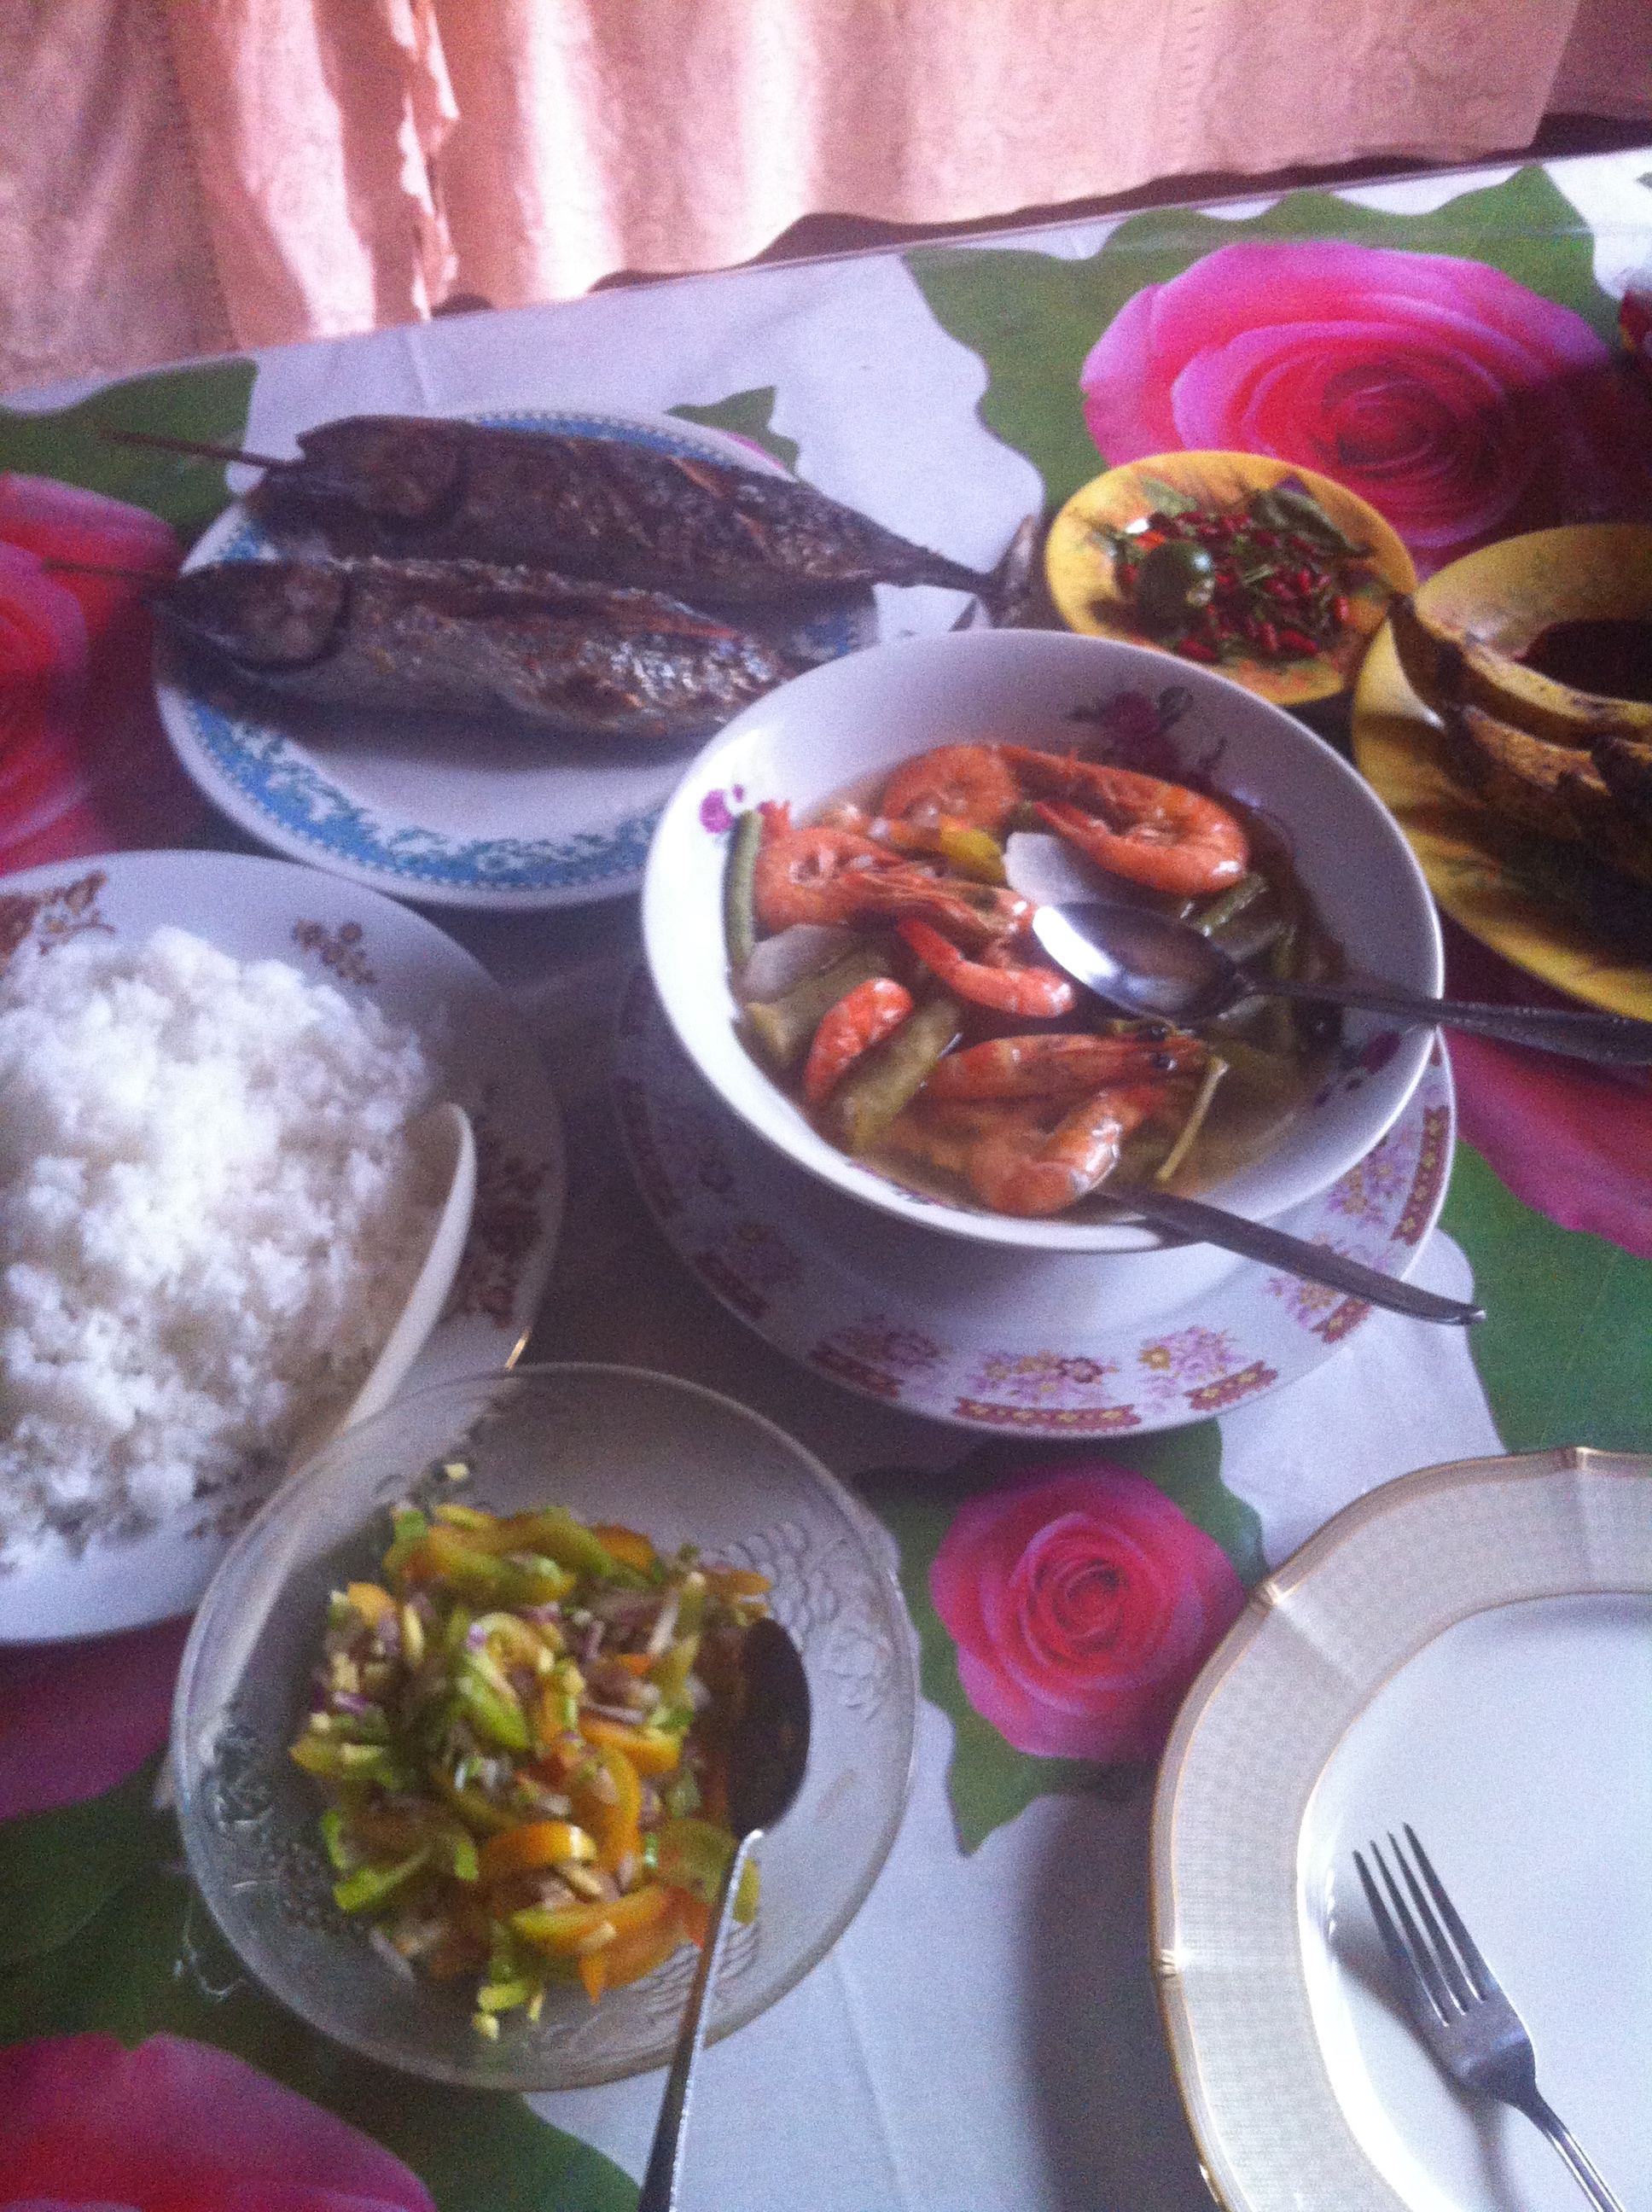 Lunch on the island ofNegros Orientales: grilled fish, prawn sinigang, and tomato/ginger/chili salad. Yum!